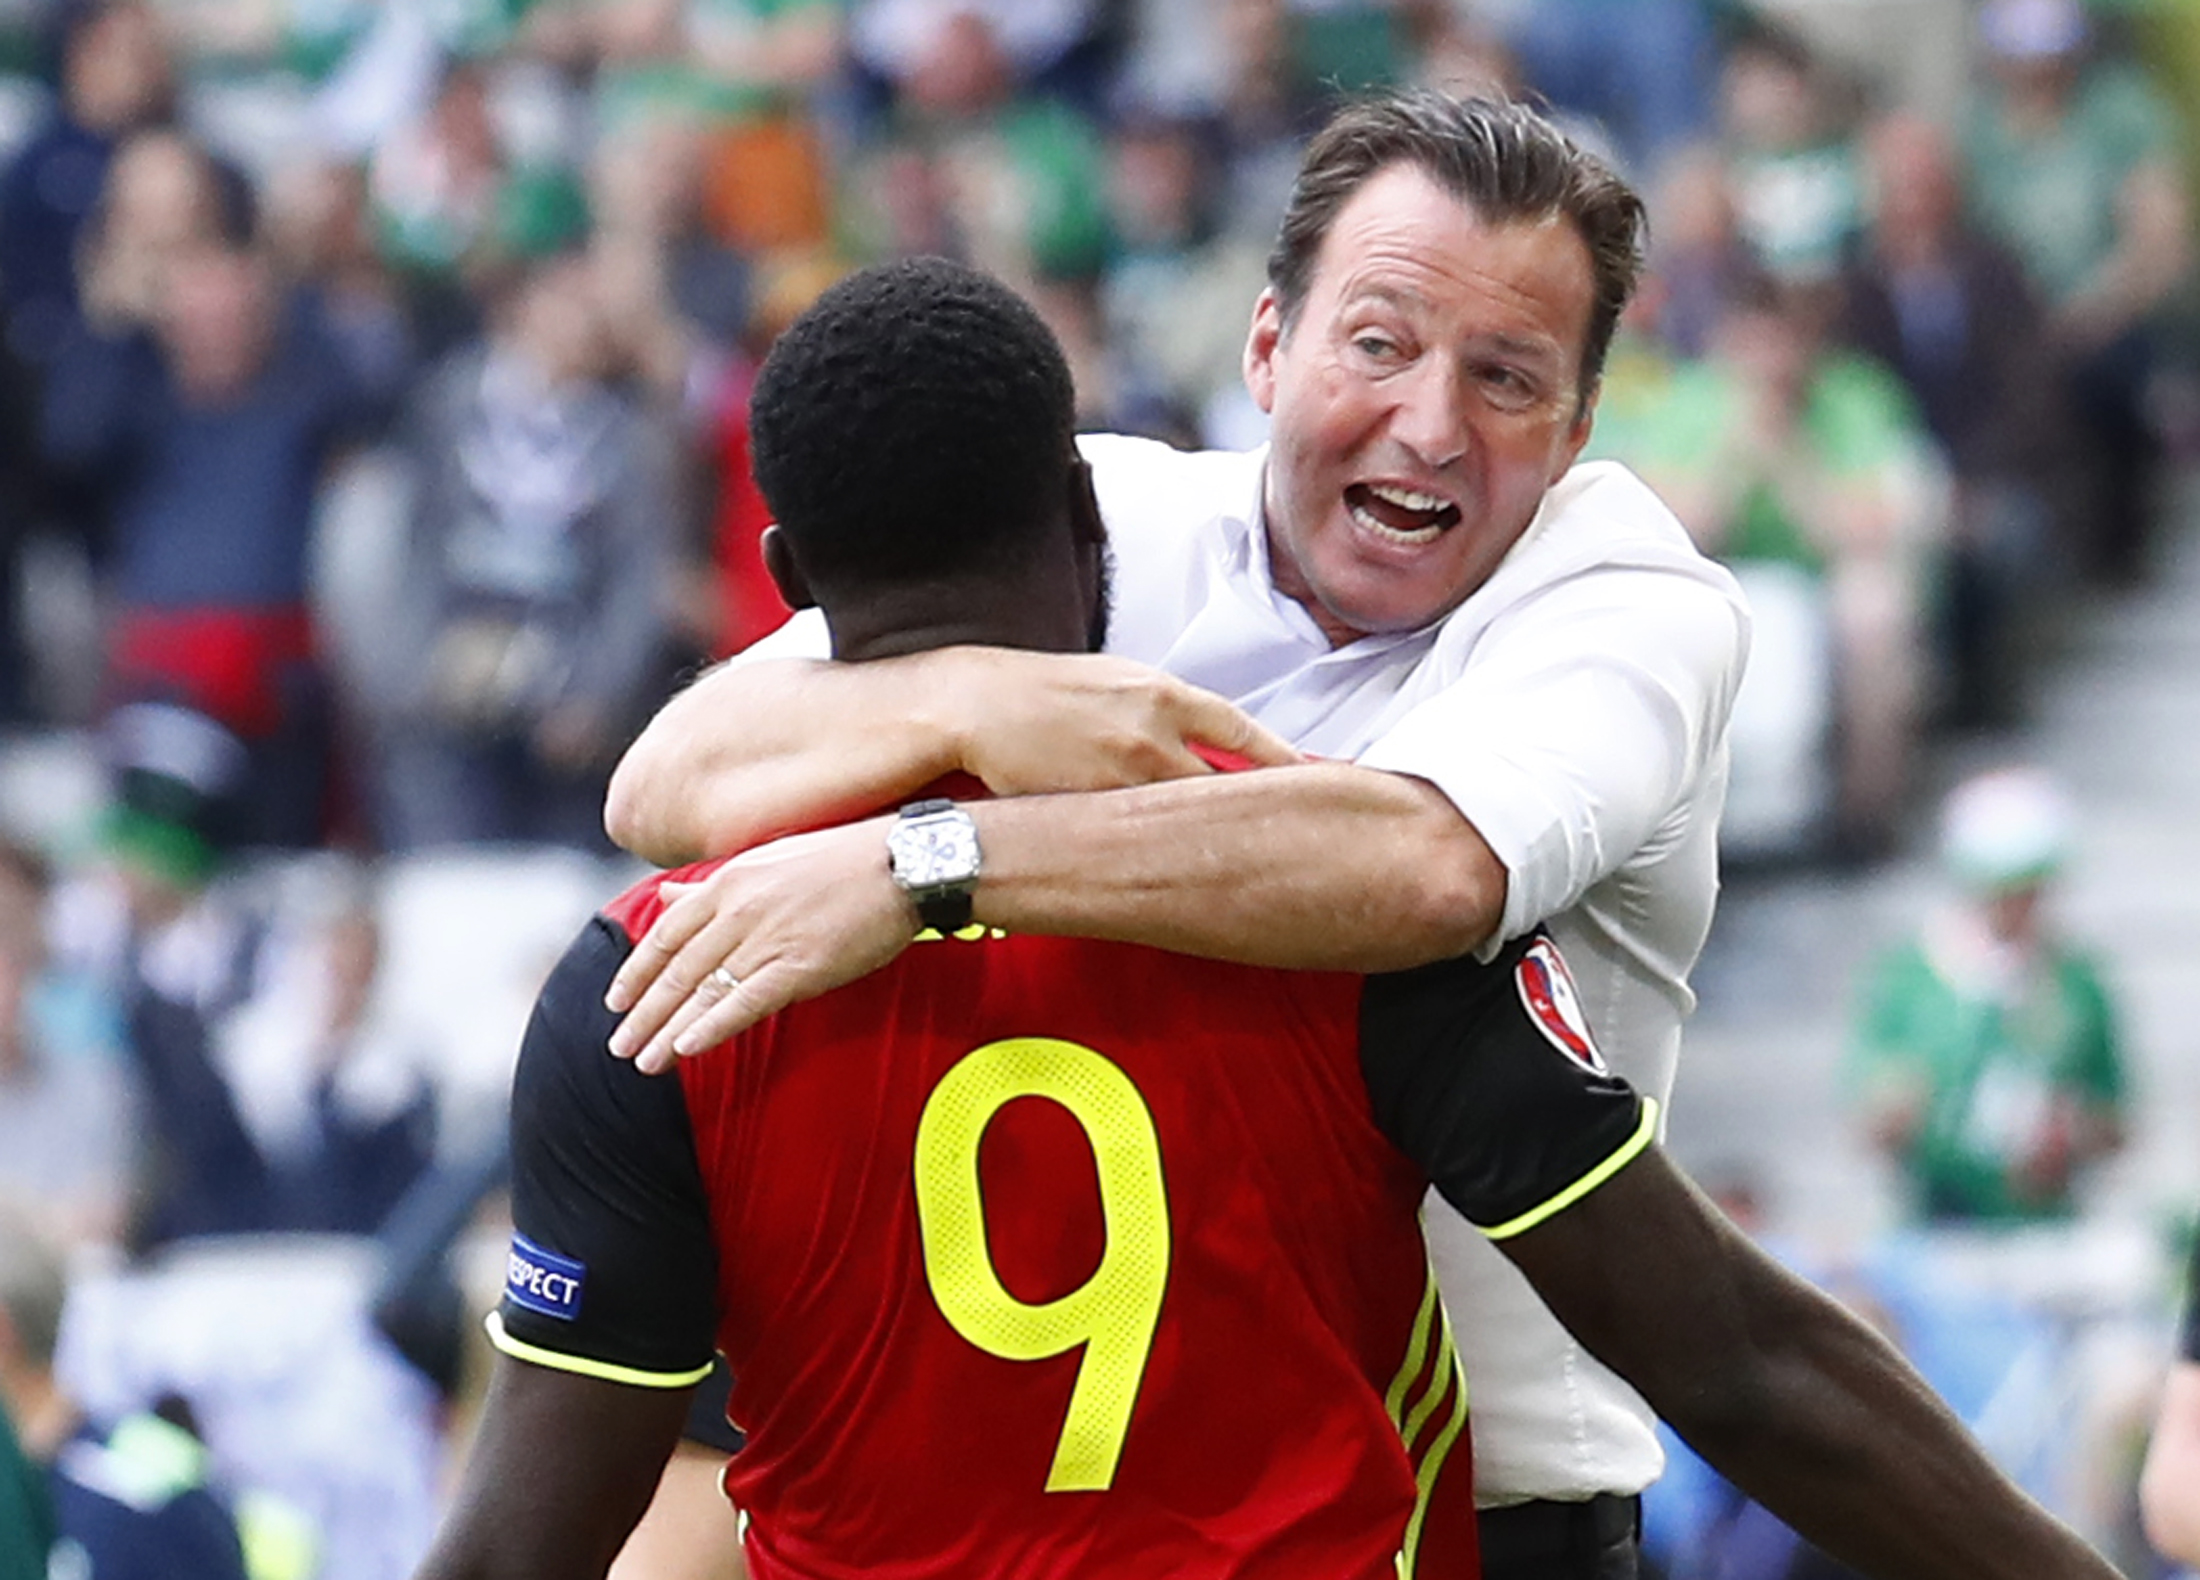 Euro 2016: Belgium coach Wilmots 'bluffed' over team selection